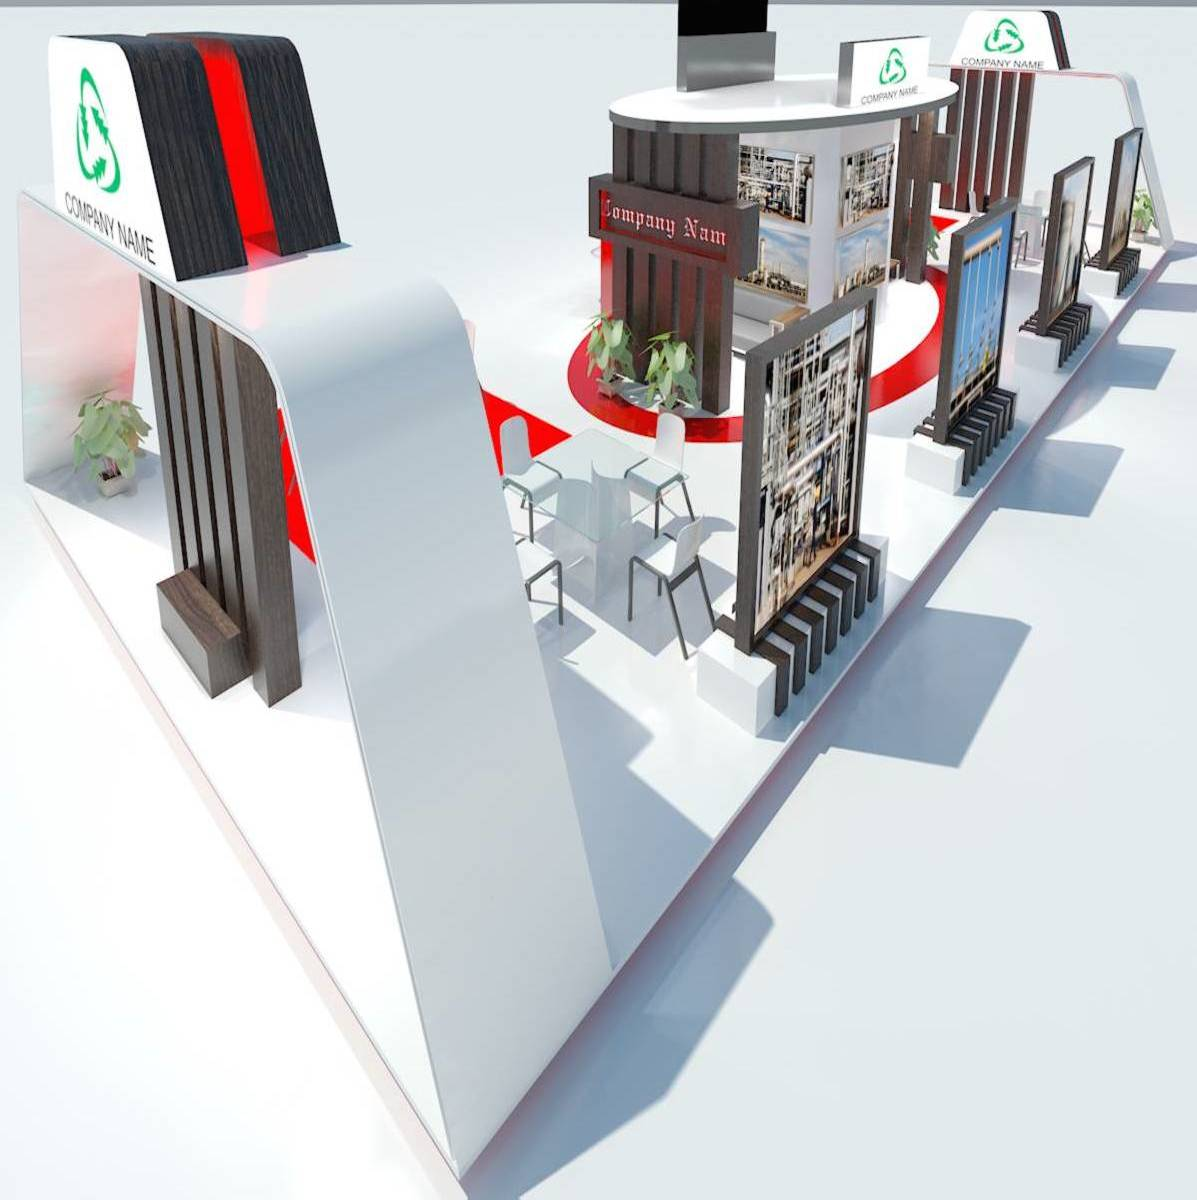 Exhibition Stand 032 3d model 3ds max dxf fbx obj 215853